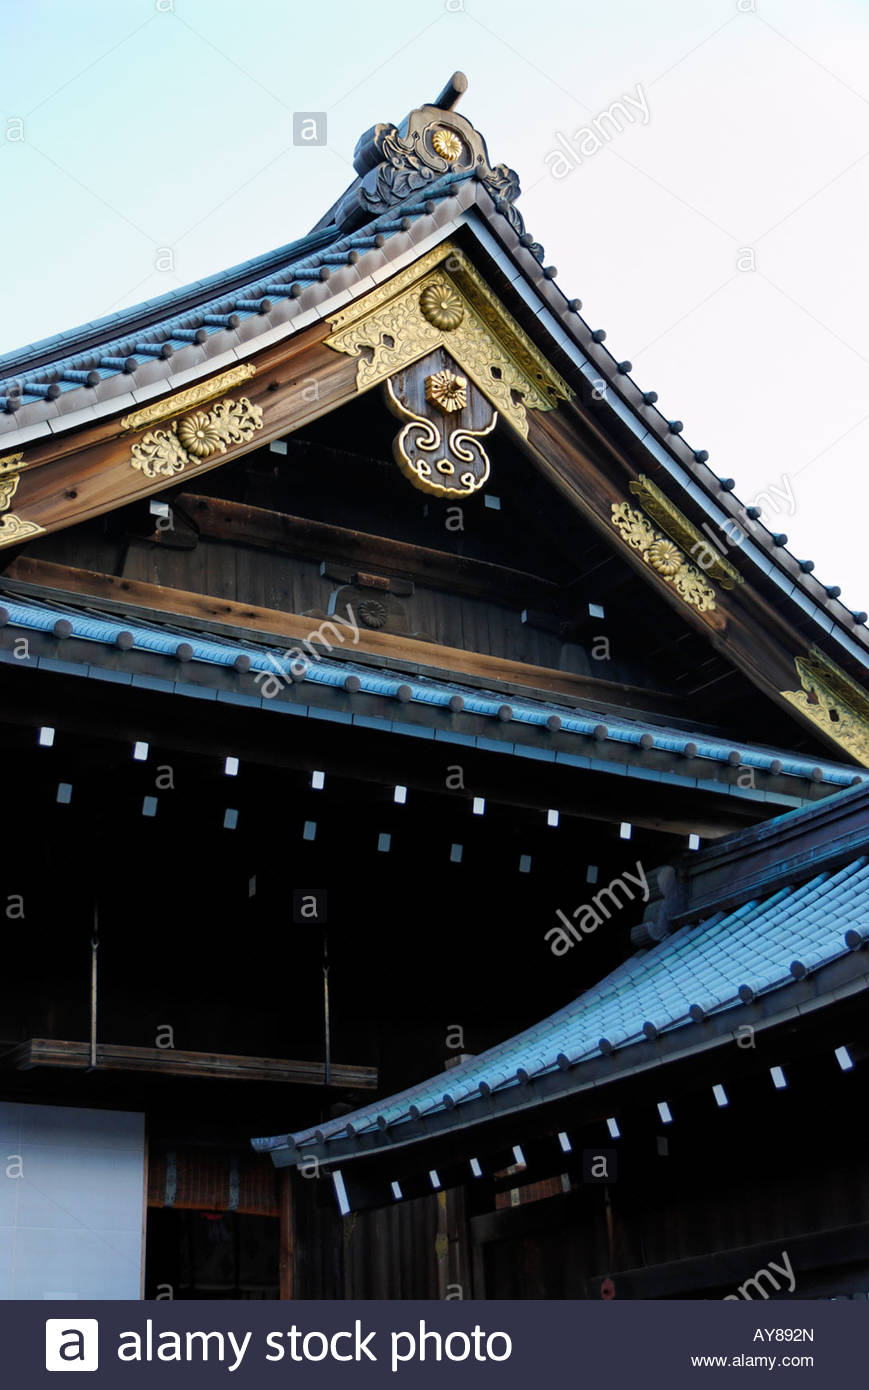 ornamented roof and gable of the Yasukuni Shrine in Tokyo - Stock Image